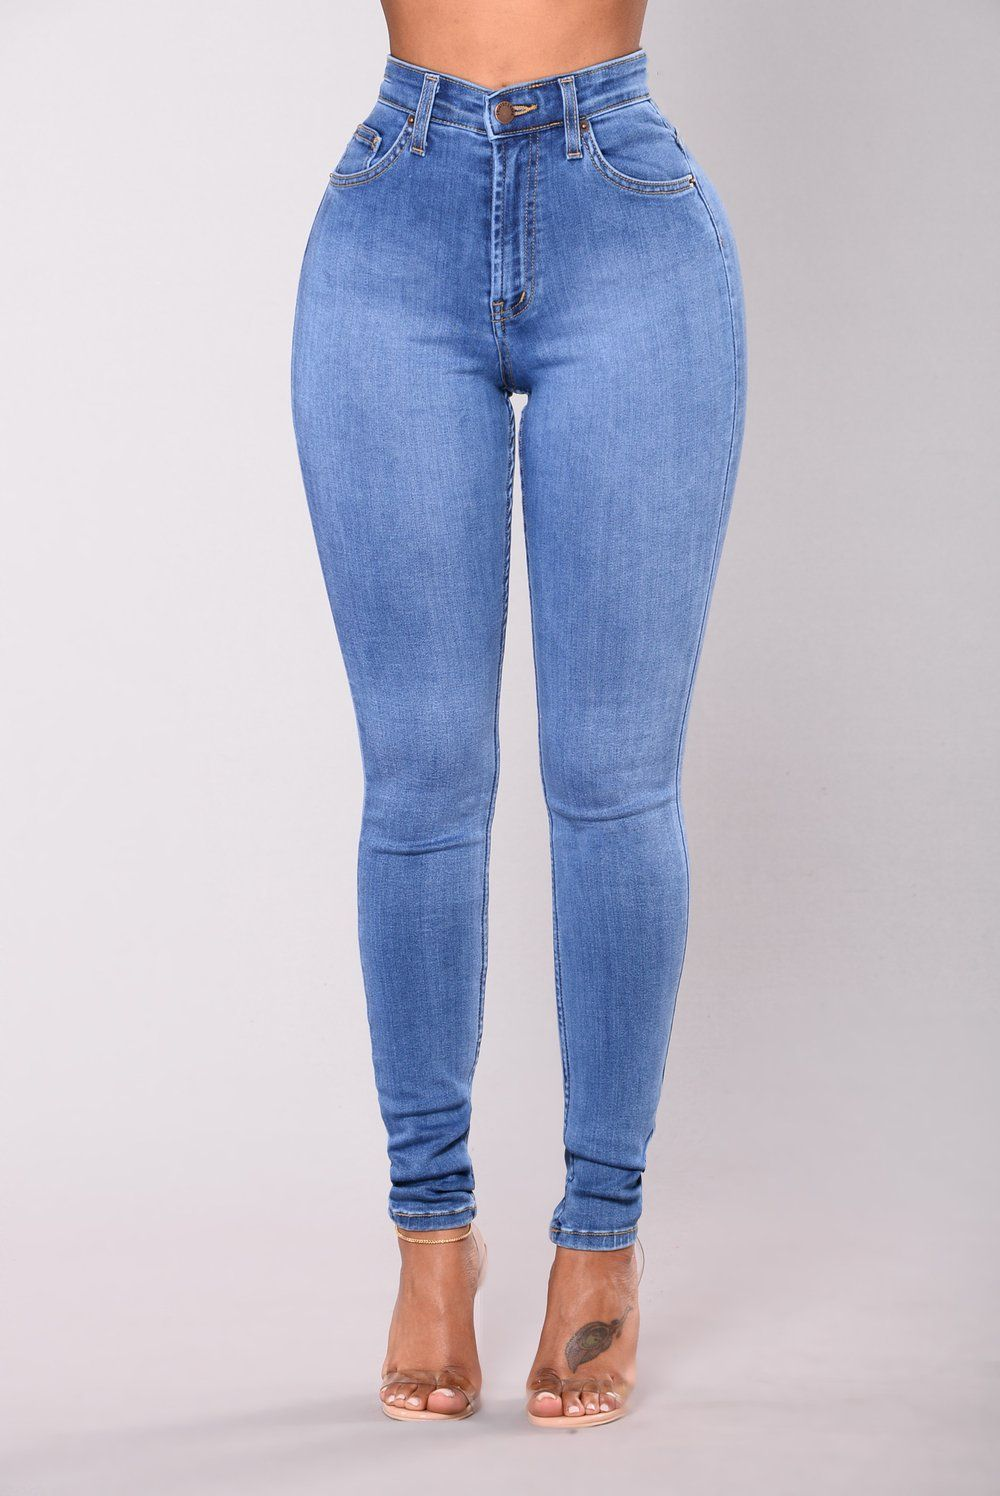 Jeans Outfit For Women Casual Wear Petite Wedding Guest Dresses Skinny Golf Trousers Designer Party Dresses Mother Of The Groom Dresses For Summer Casual Wear Dresses